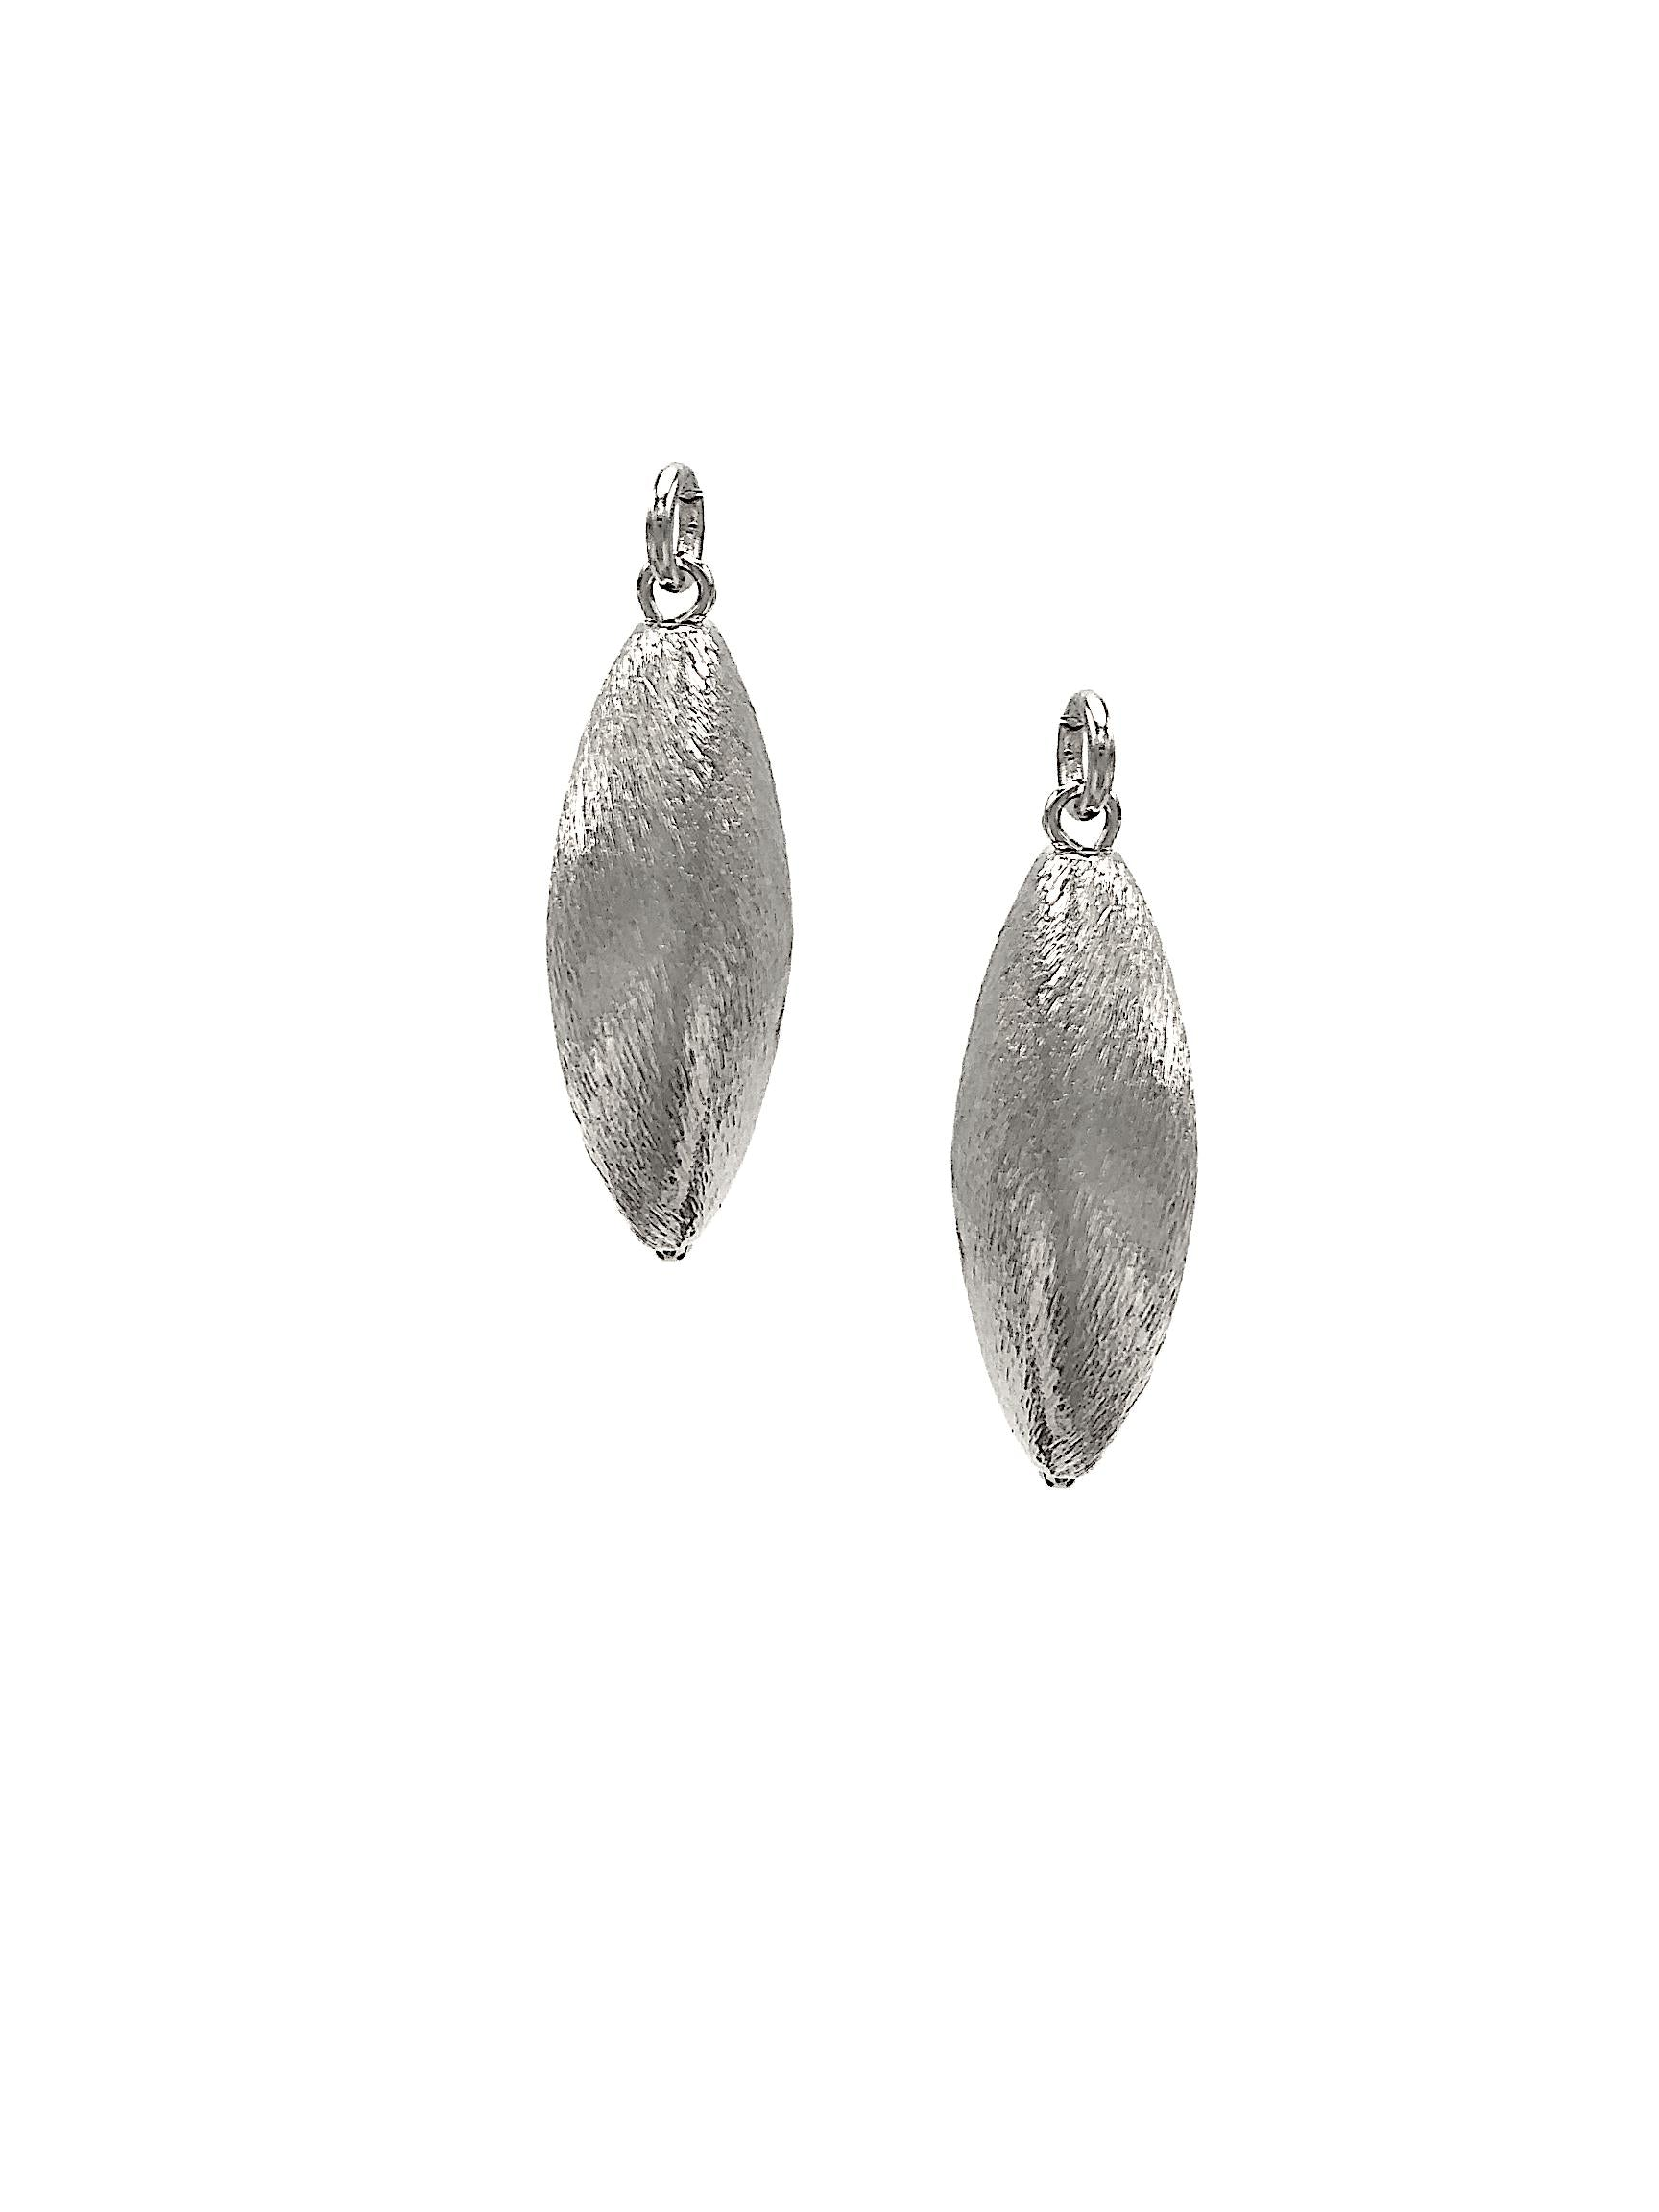 Zeppelin Silver Earring Charms-Womens Charms for Earrings-JAREDJAMIN Jewelry Online-JARED JAMIN